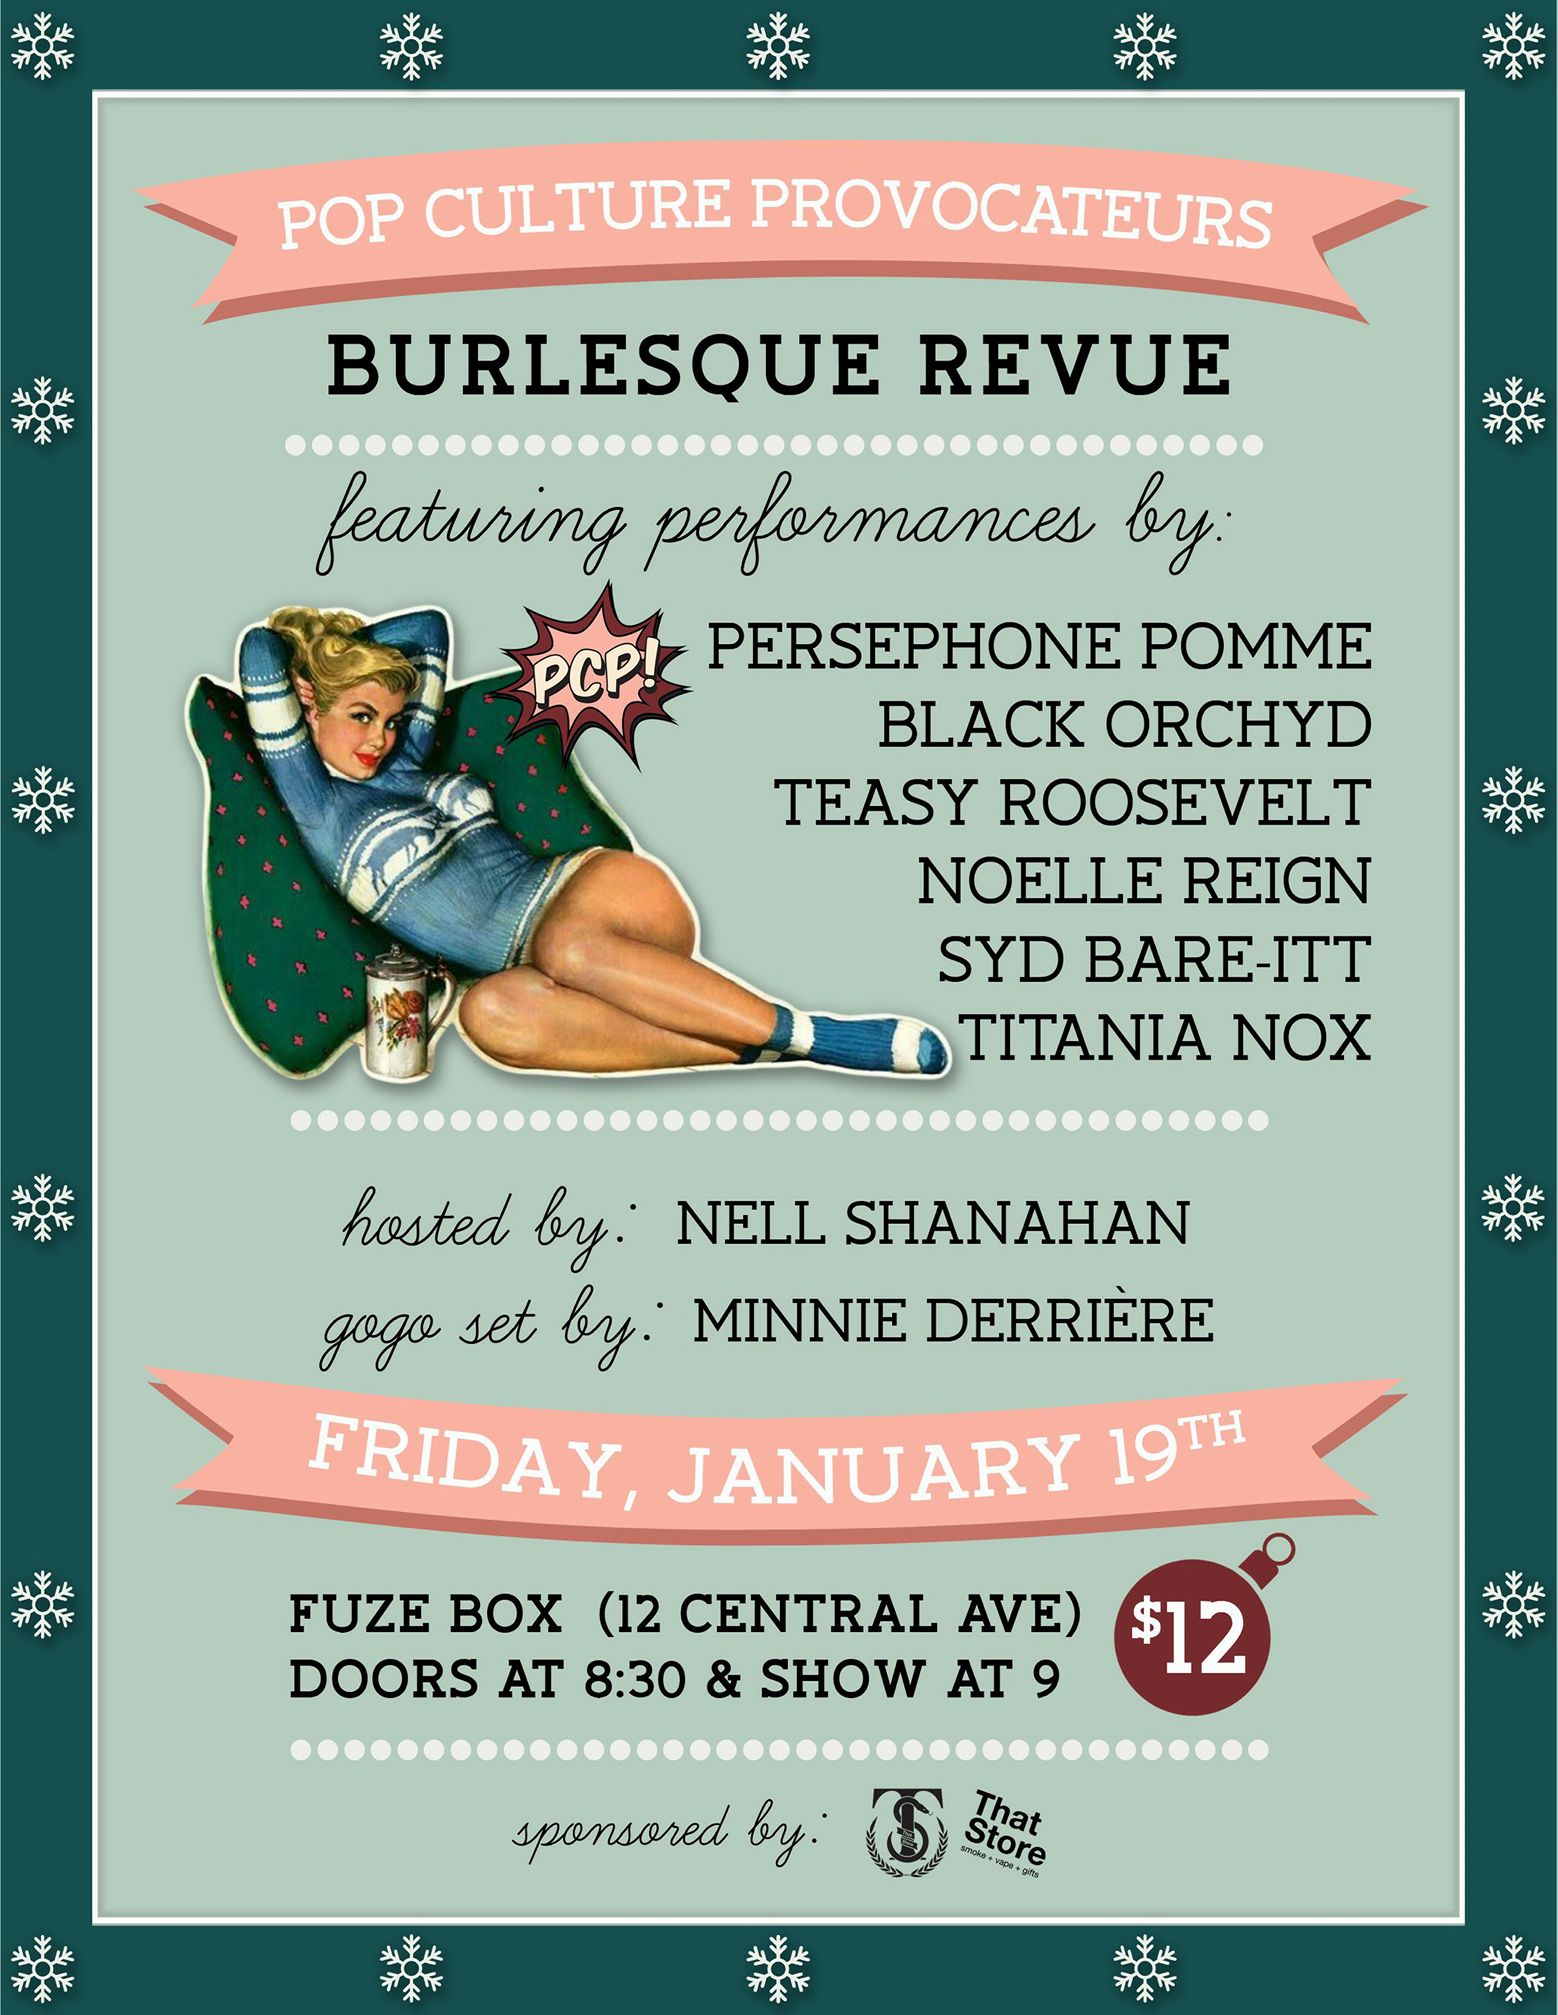 - The lovely ladies of Pop Culture Provocateurs present the January edition of their monthly Burlesque Revue!Win a $25 That Store gift card in the raffle!Move and groove into 2018 with Pop Culture Provocateursat our monthly burlesque revue! It might be cold outside but we'll be making it hot and steamy with an evening of comical, sensual, and experimental ecdysiasts!FEATURING PERFORMANCES BY...BLACK ORCHYDNOELLE REIGNPERSEPHONE POMMETITANIA NOXTEASY ROOSEVELTSYD BARE-ITTHosted by NELL SHANAHANGogo set by our stage kitten, MINNIE DERRIÈREFRIDAY, JANUARY 19THFUZE BOX12 CENTRAL AVEDOORS AT 830 // SHOW AT 9$12Stick around and party after the show at Body Shine !